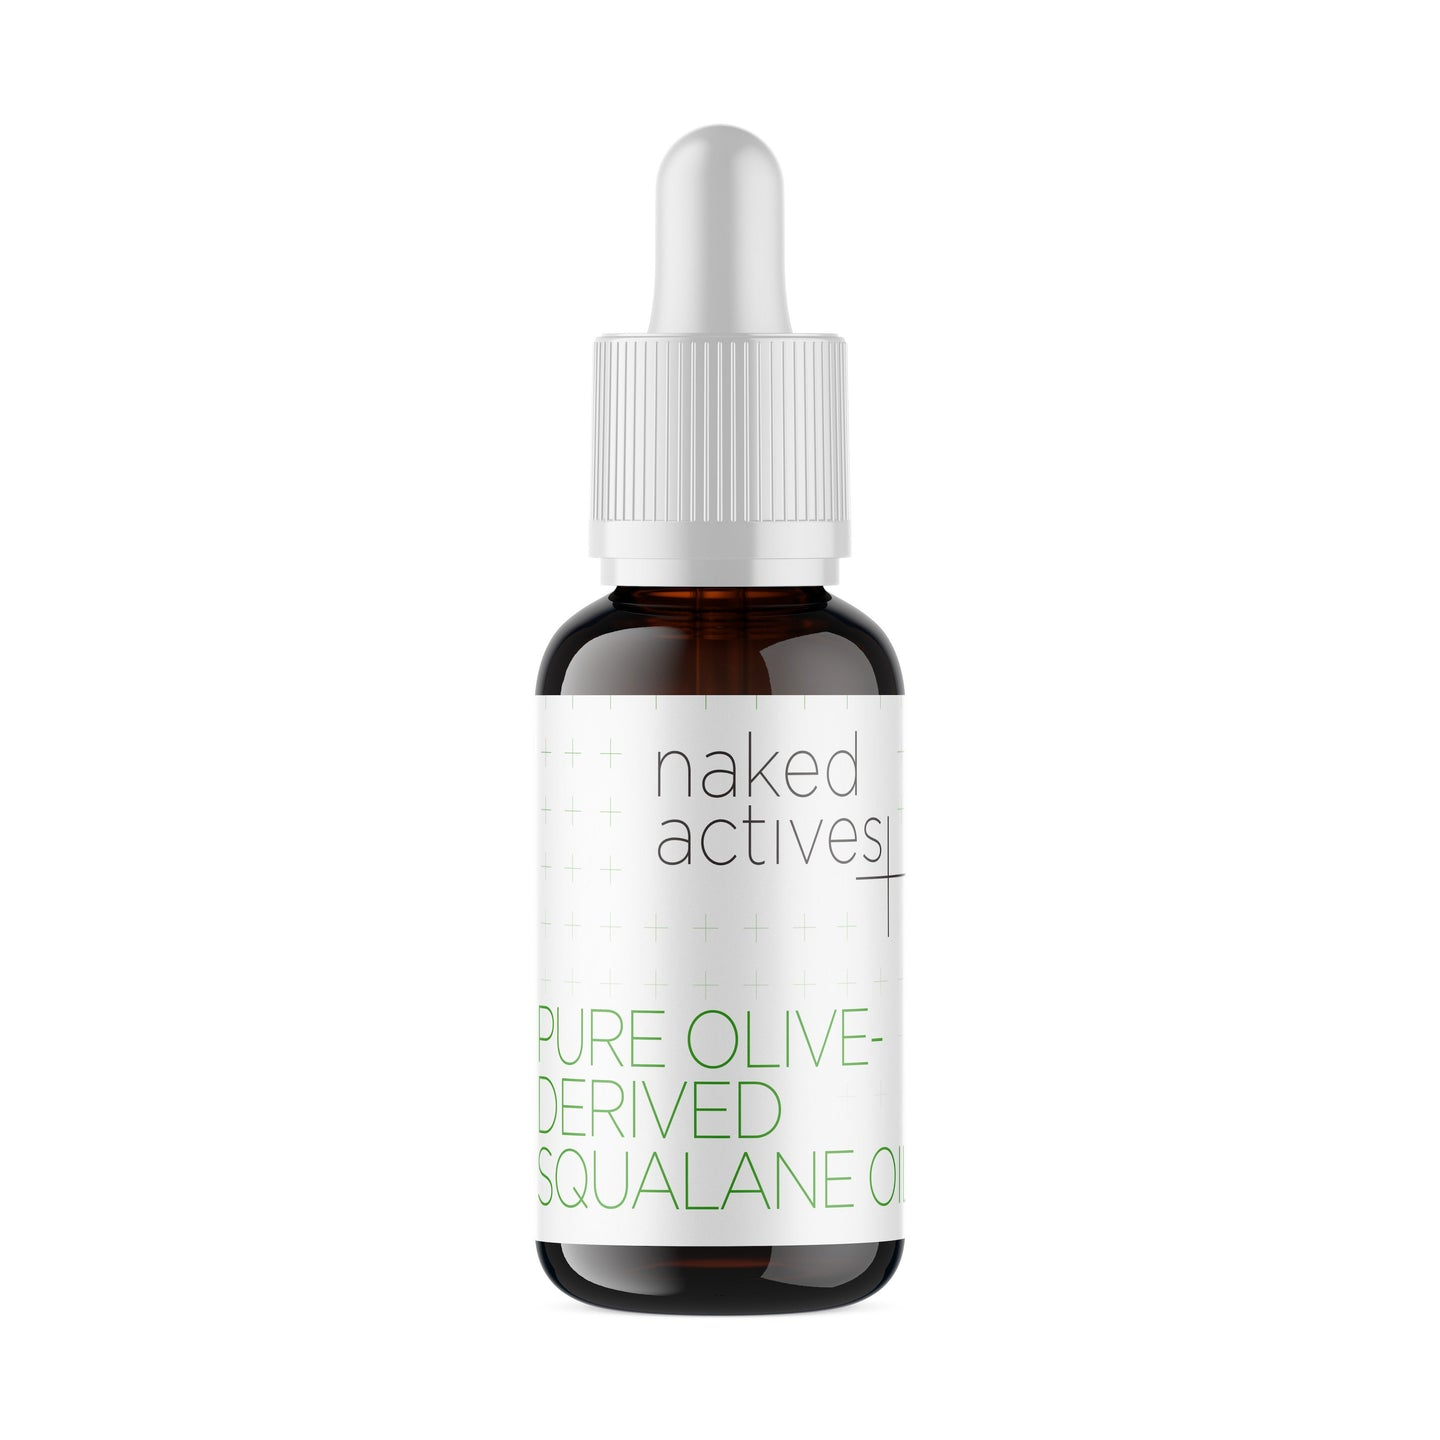 Naked Actives Squalane Oil.  Pure Olive Derived Serum